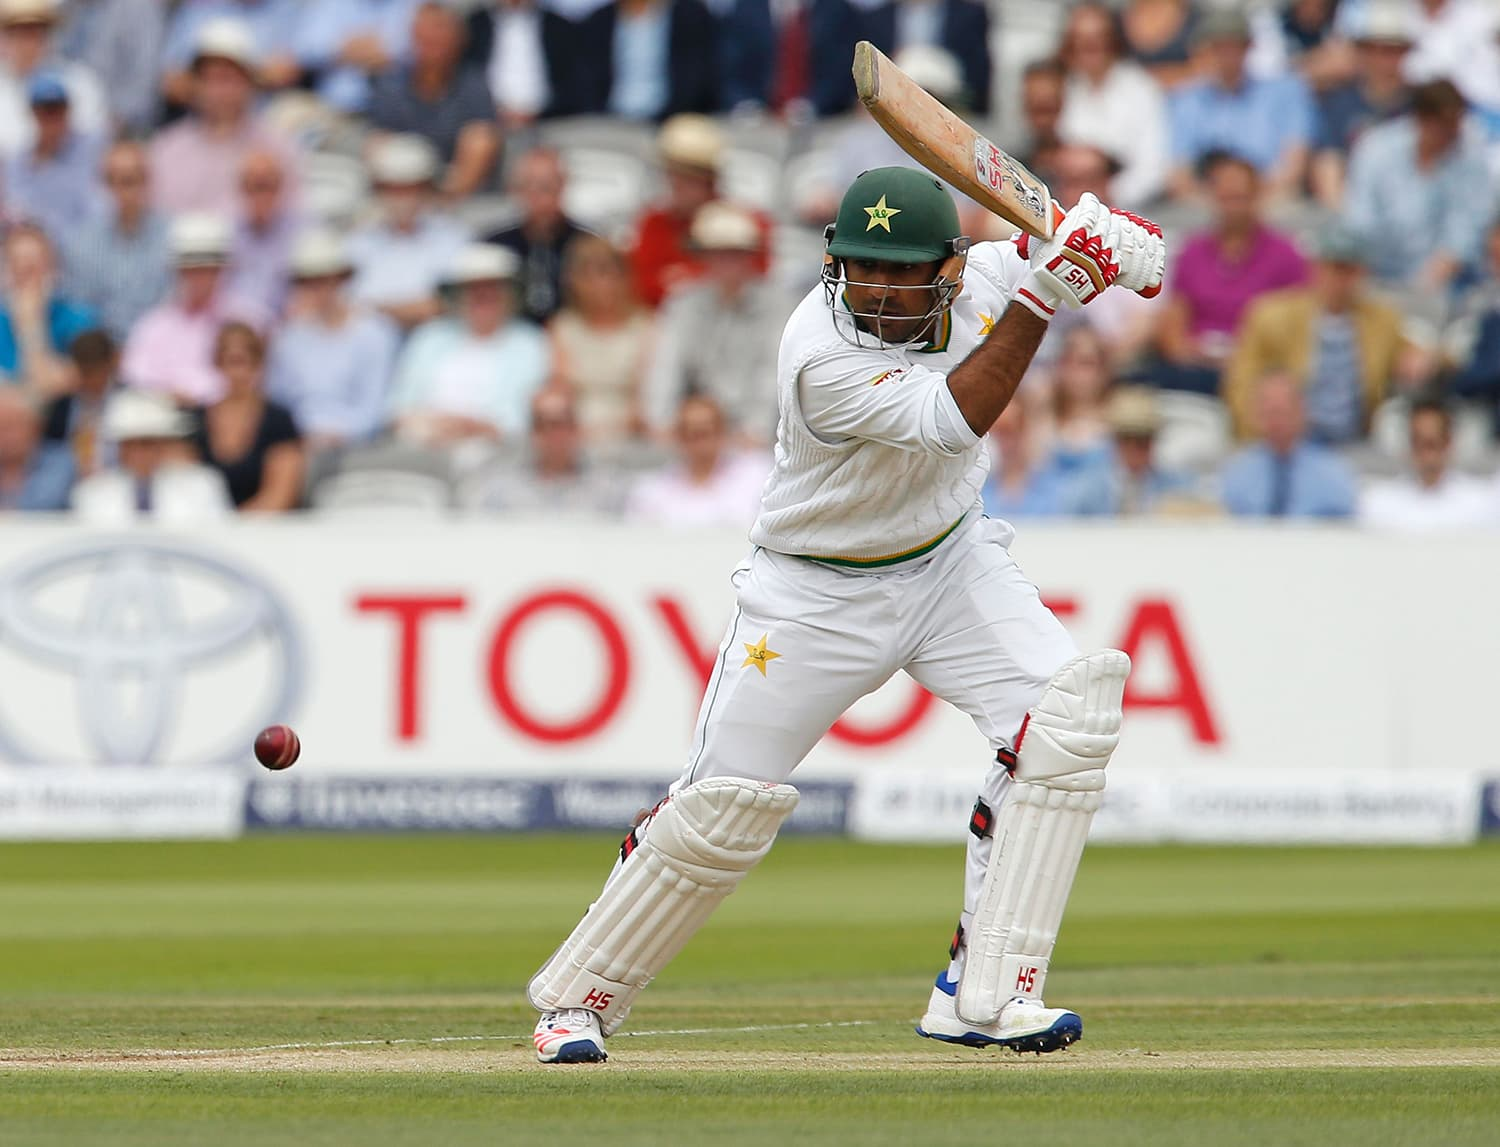 Sarfraz Ahmed is averaging 45 at seven. — AFP